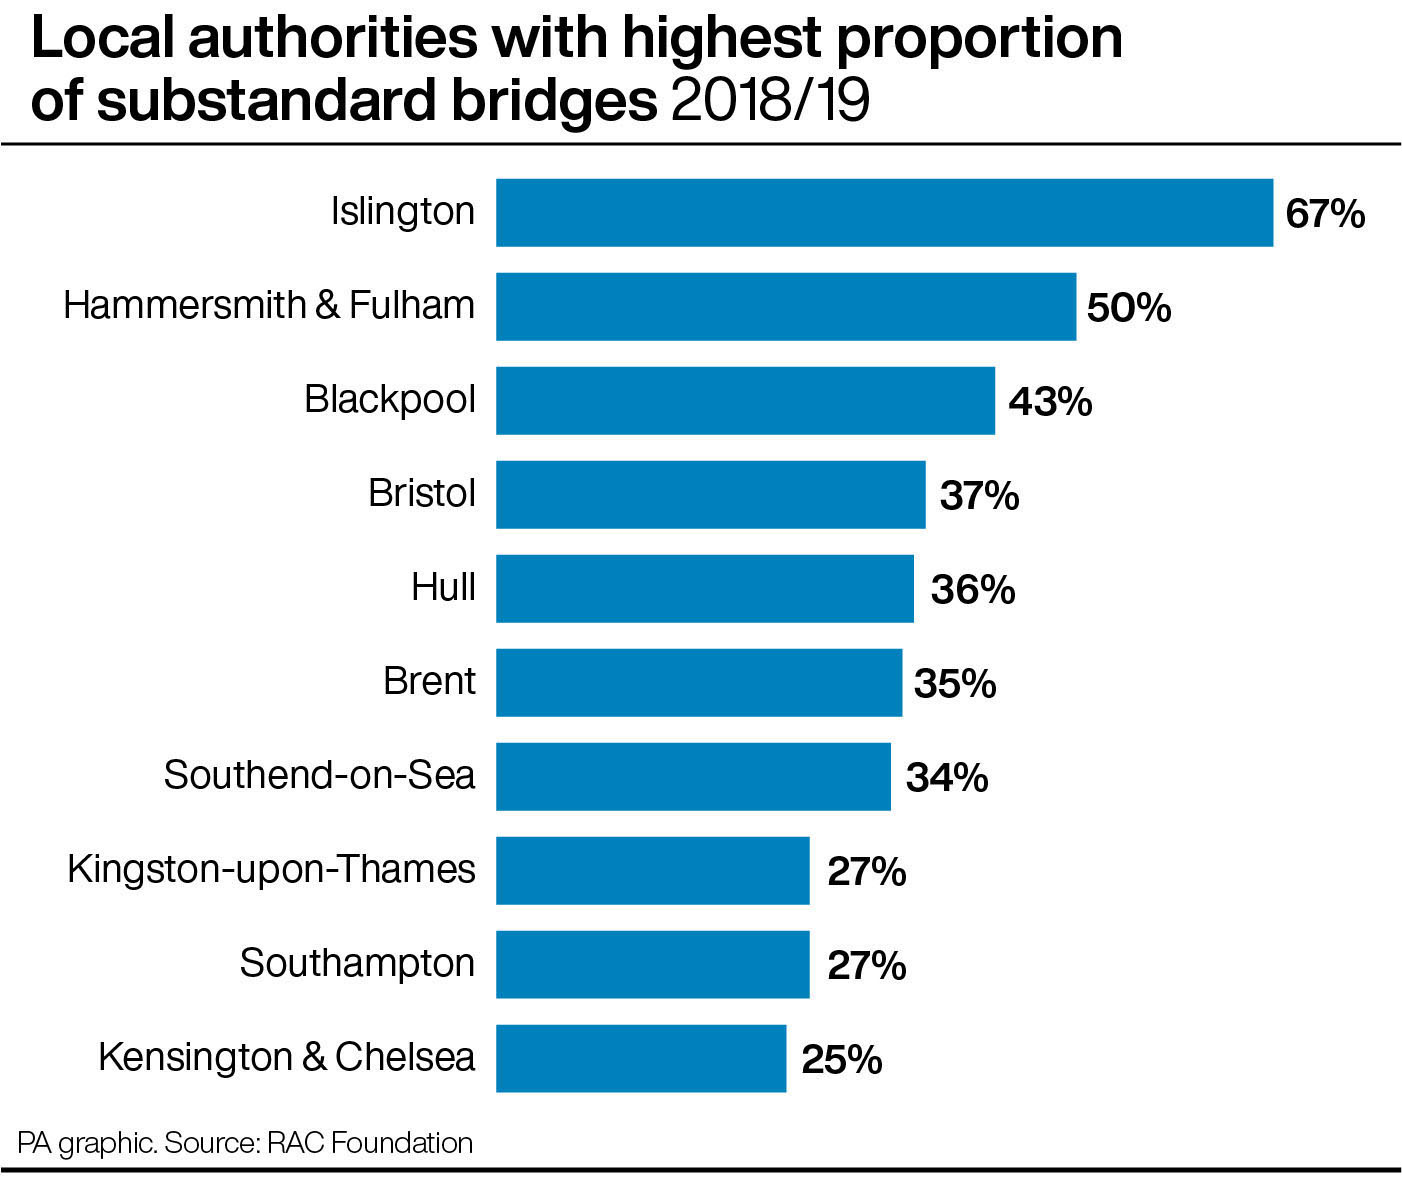 Local authorities with highest proportion of substandard bridges 2018/19